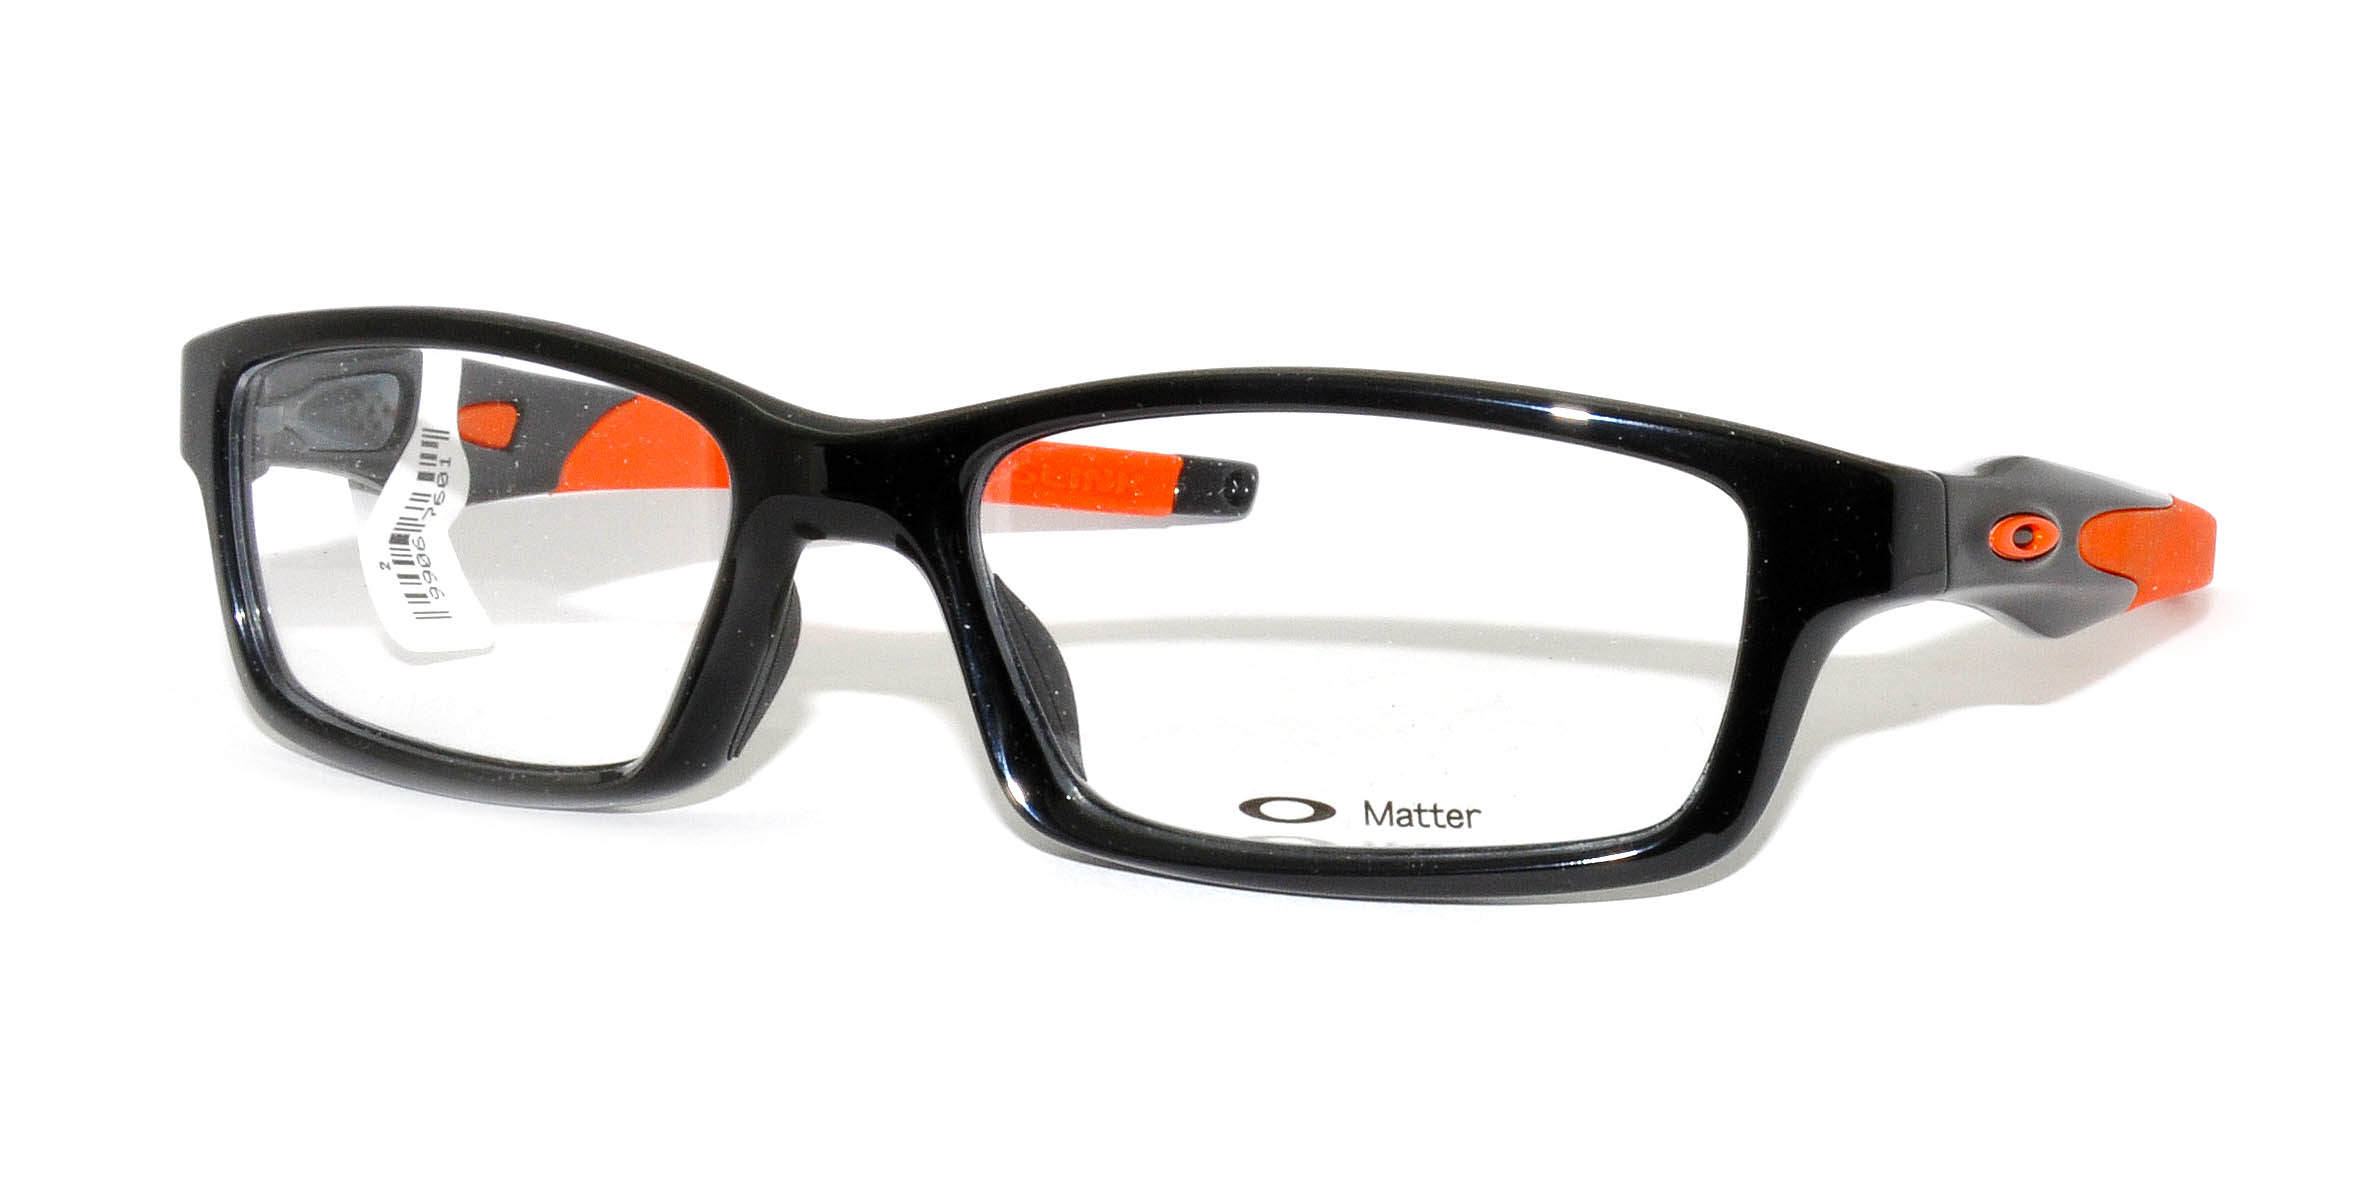 95fa2f88f09 Oakley Crosslink Orange « Heritage Malta